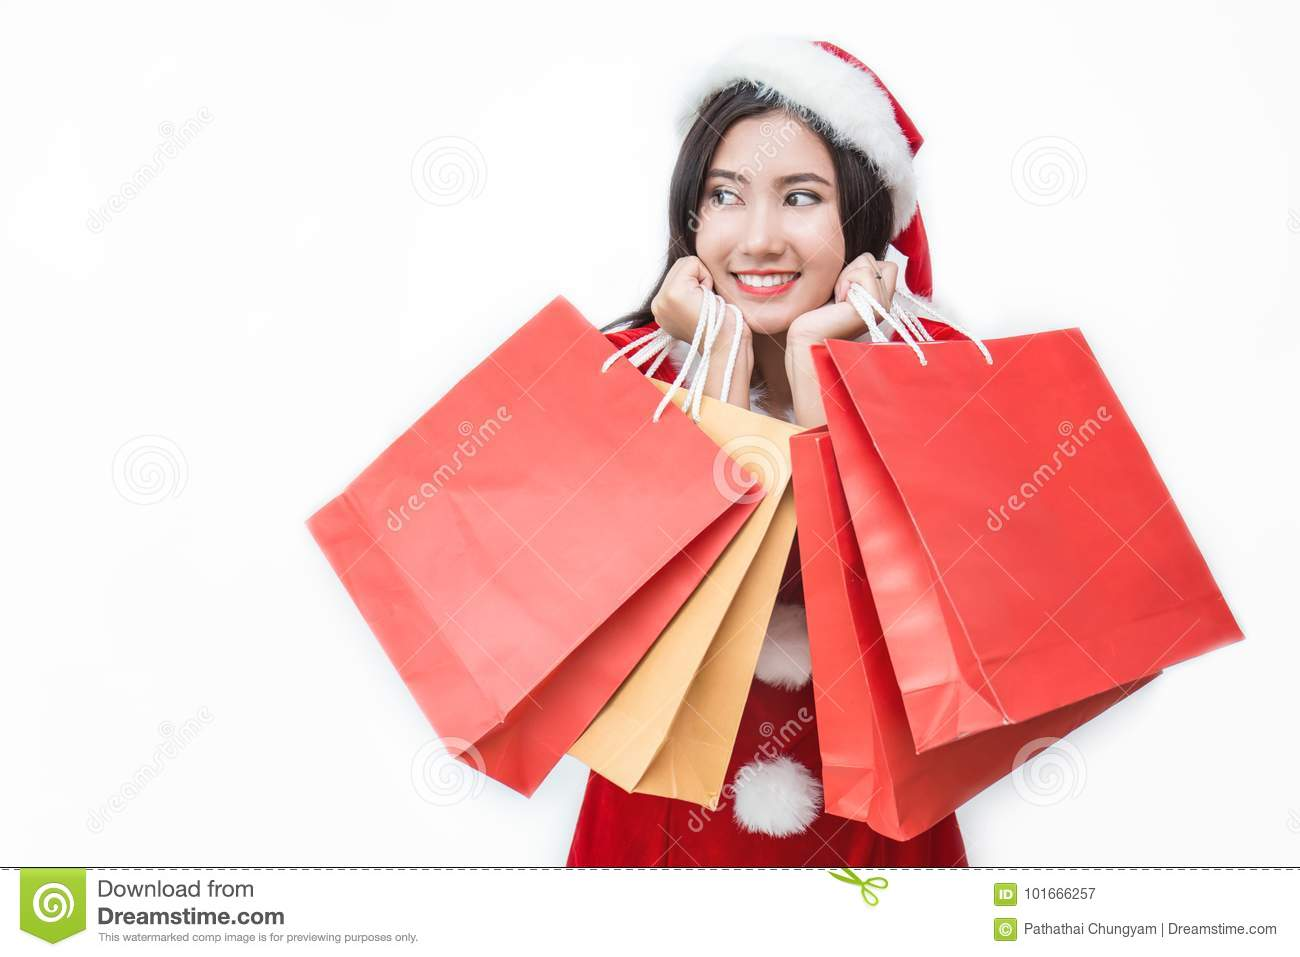 a9edb1997c609 Christmas winter shopping. Asian woman in santa claus hat standing holding  shopping bags excited isolated on white background.